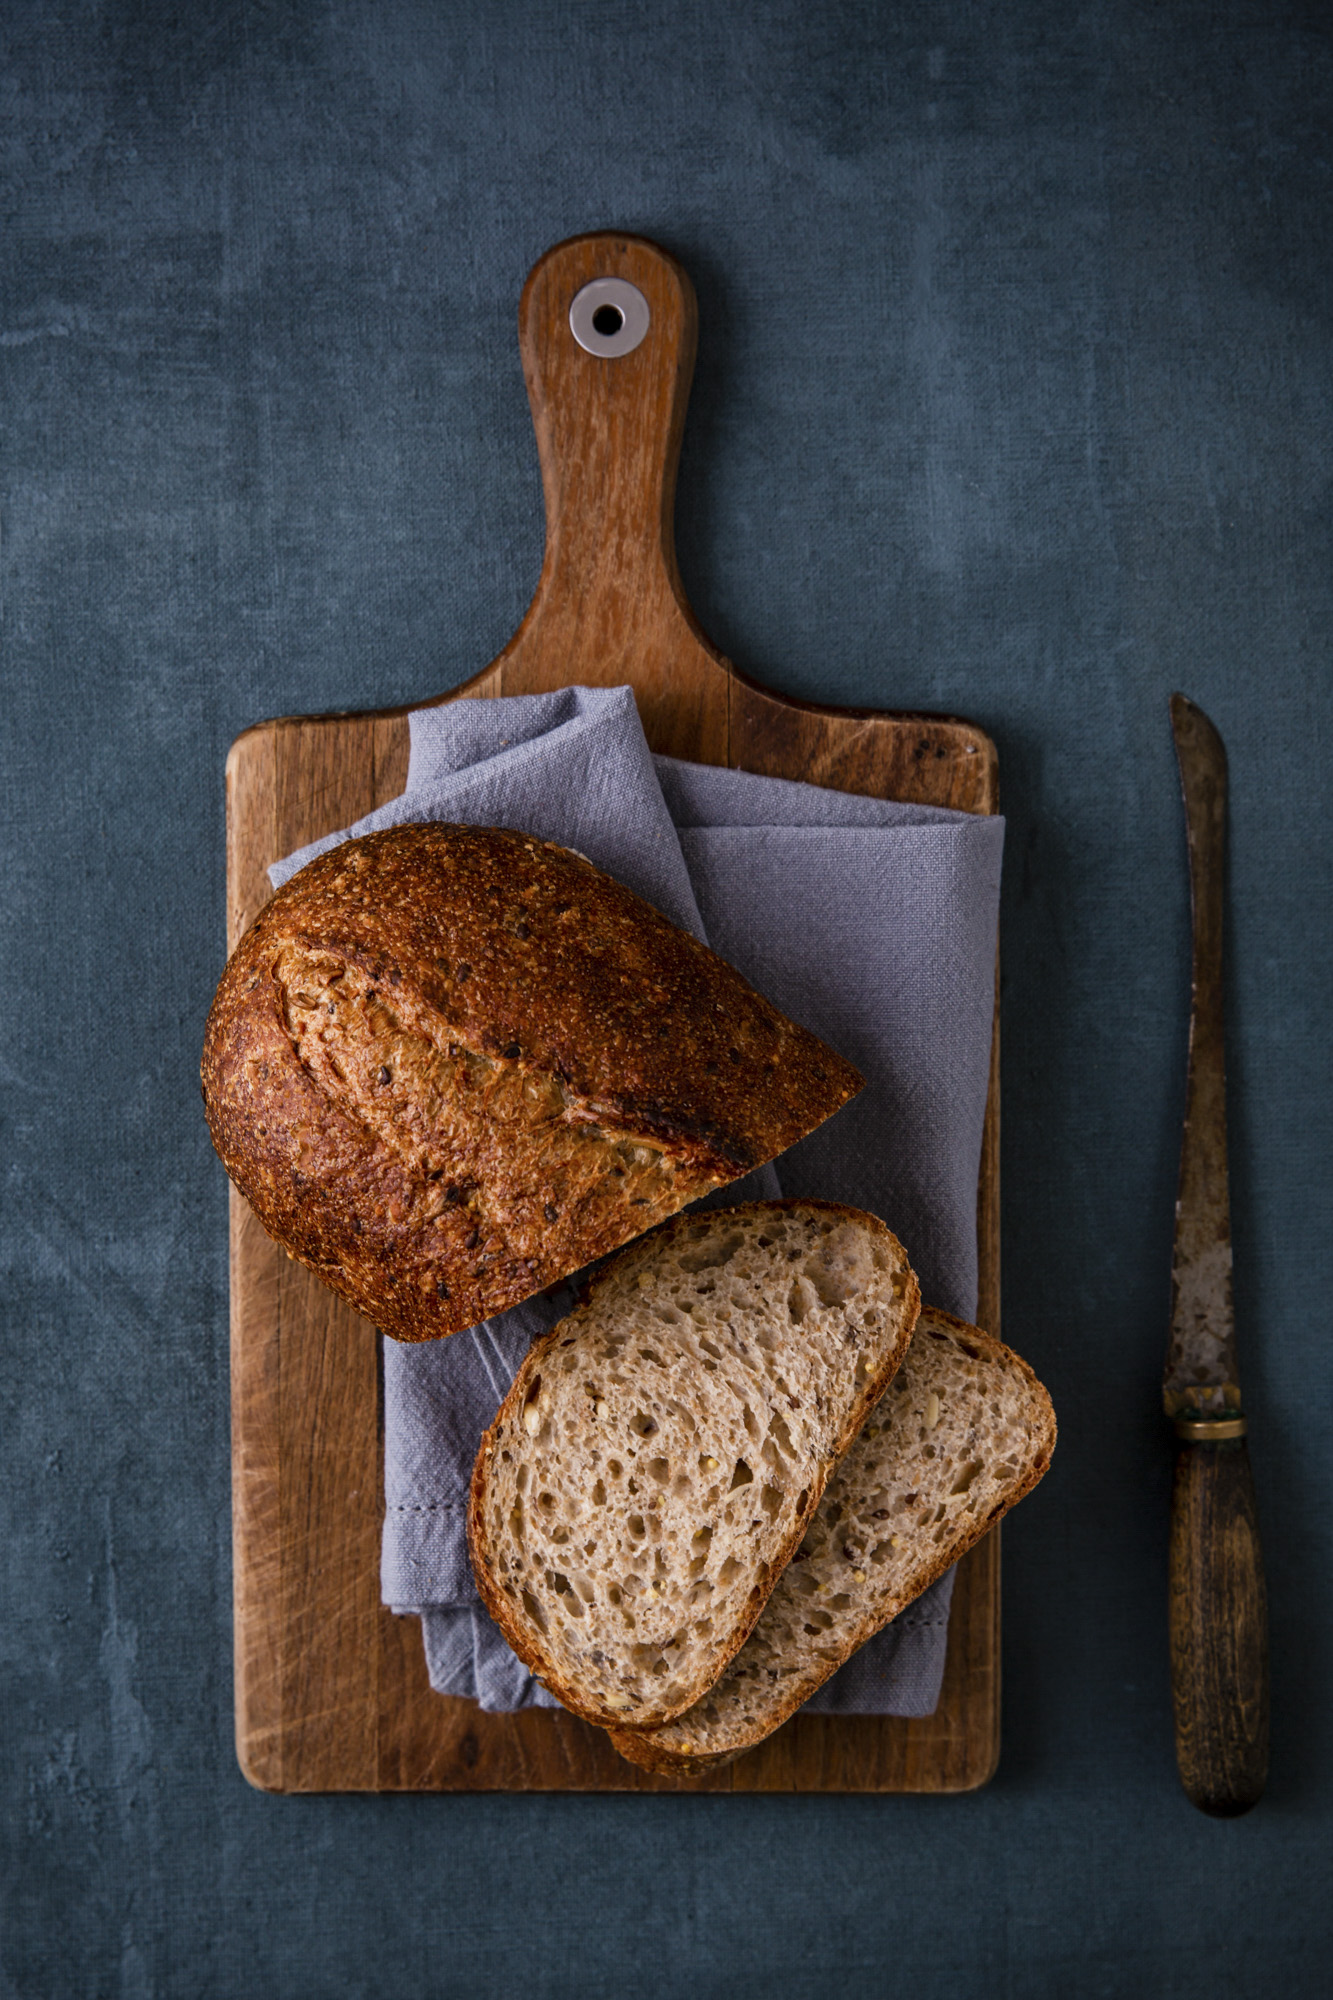 darina-kopcok-vancouver-food-photographer-26